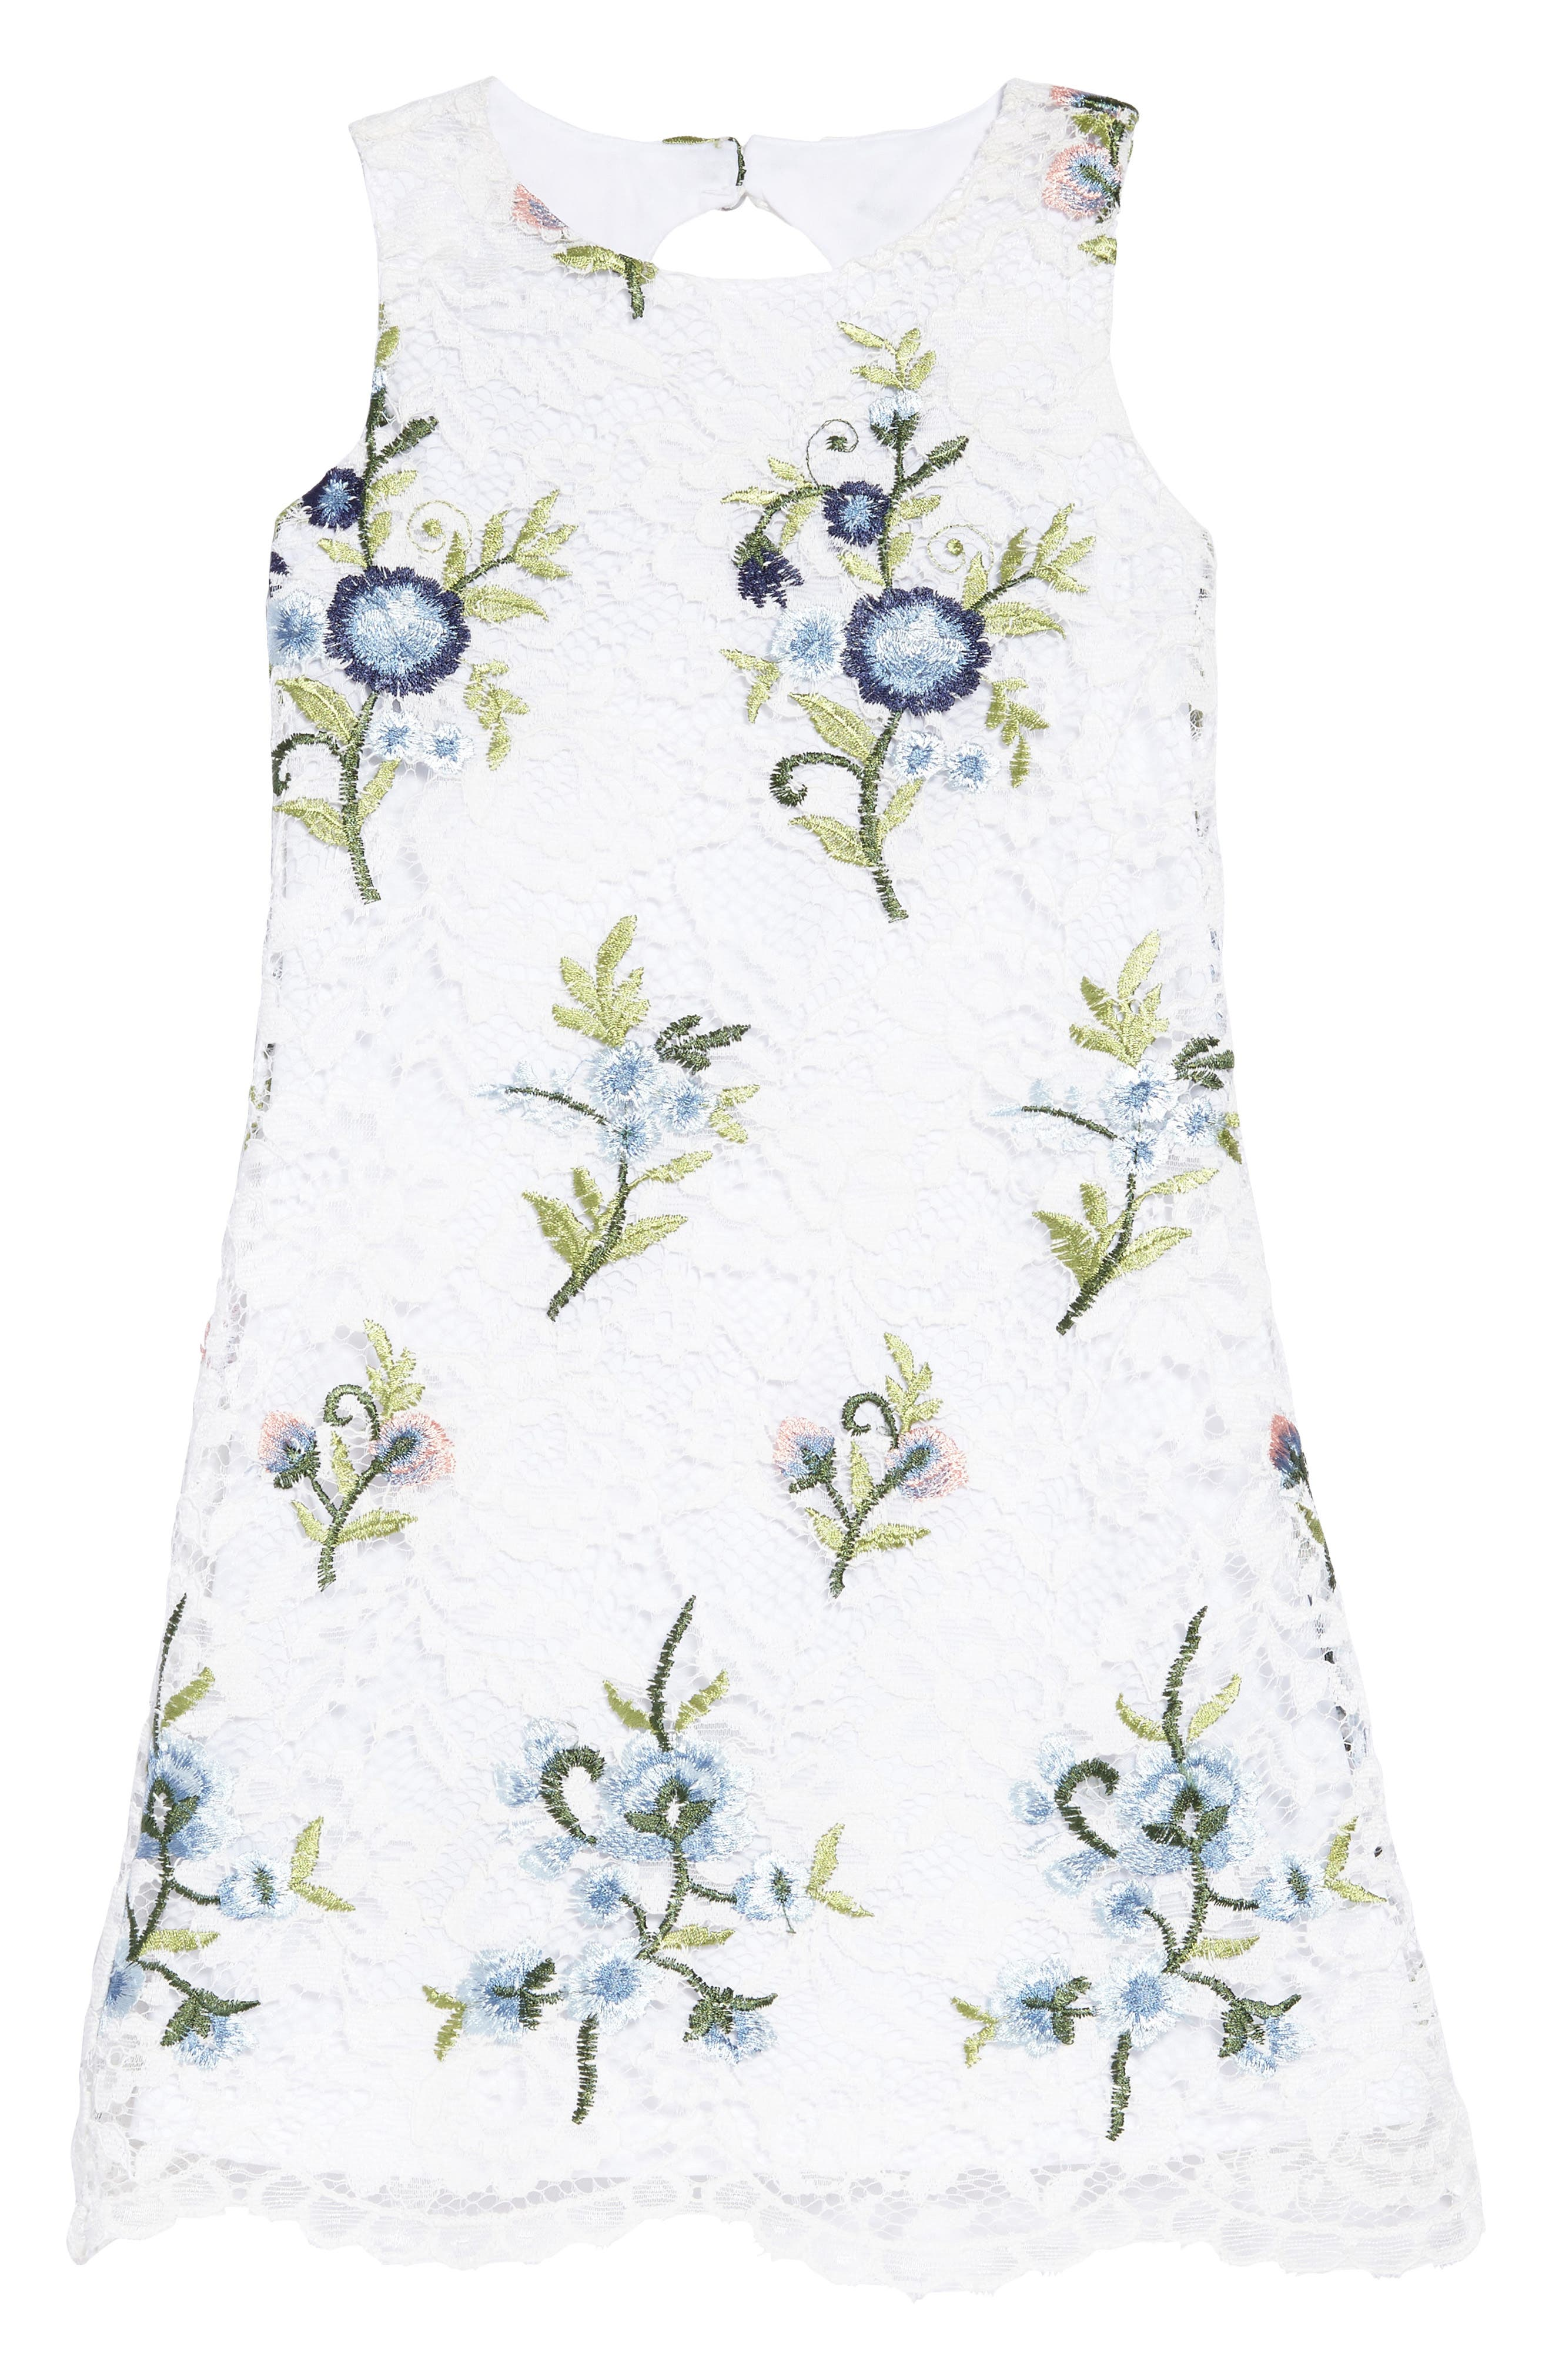 Embroidered Floral Shift Dress,                             Main thumbnail 1, color,                             White